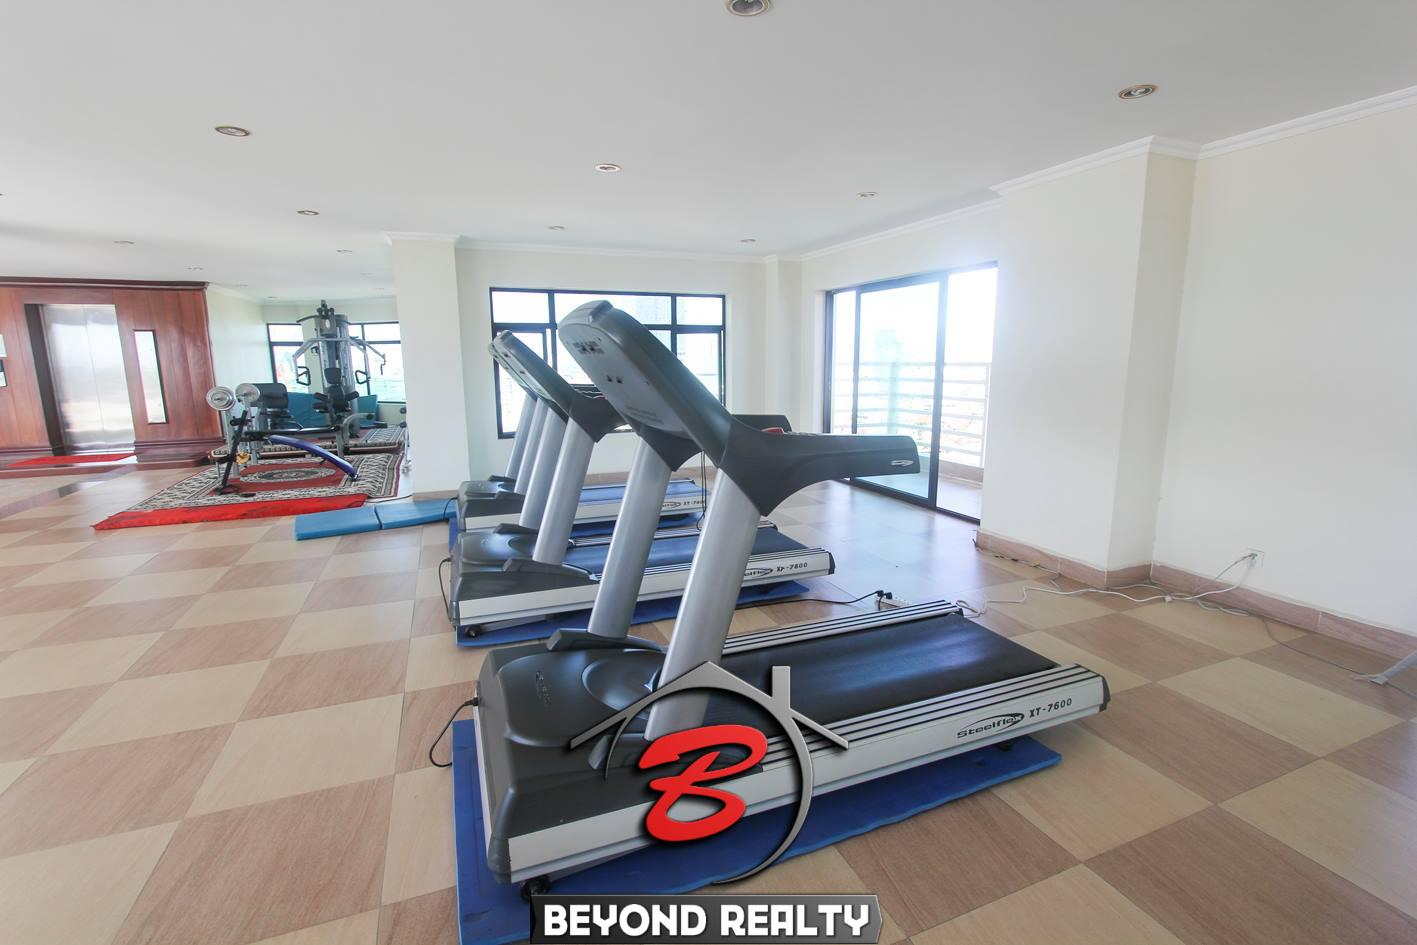 the gym of the 1-bedroom luxury spacious serviced apartment for rent in BKK1 in Phnom Penh in Cambodia